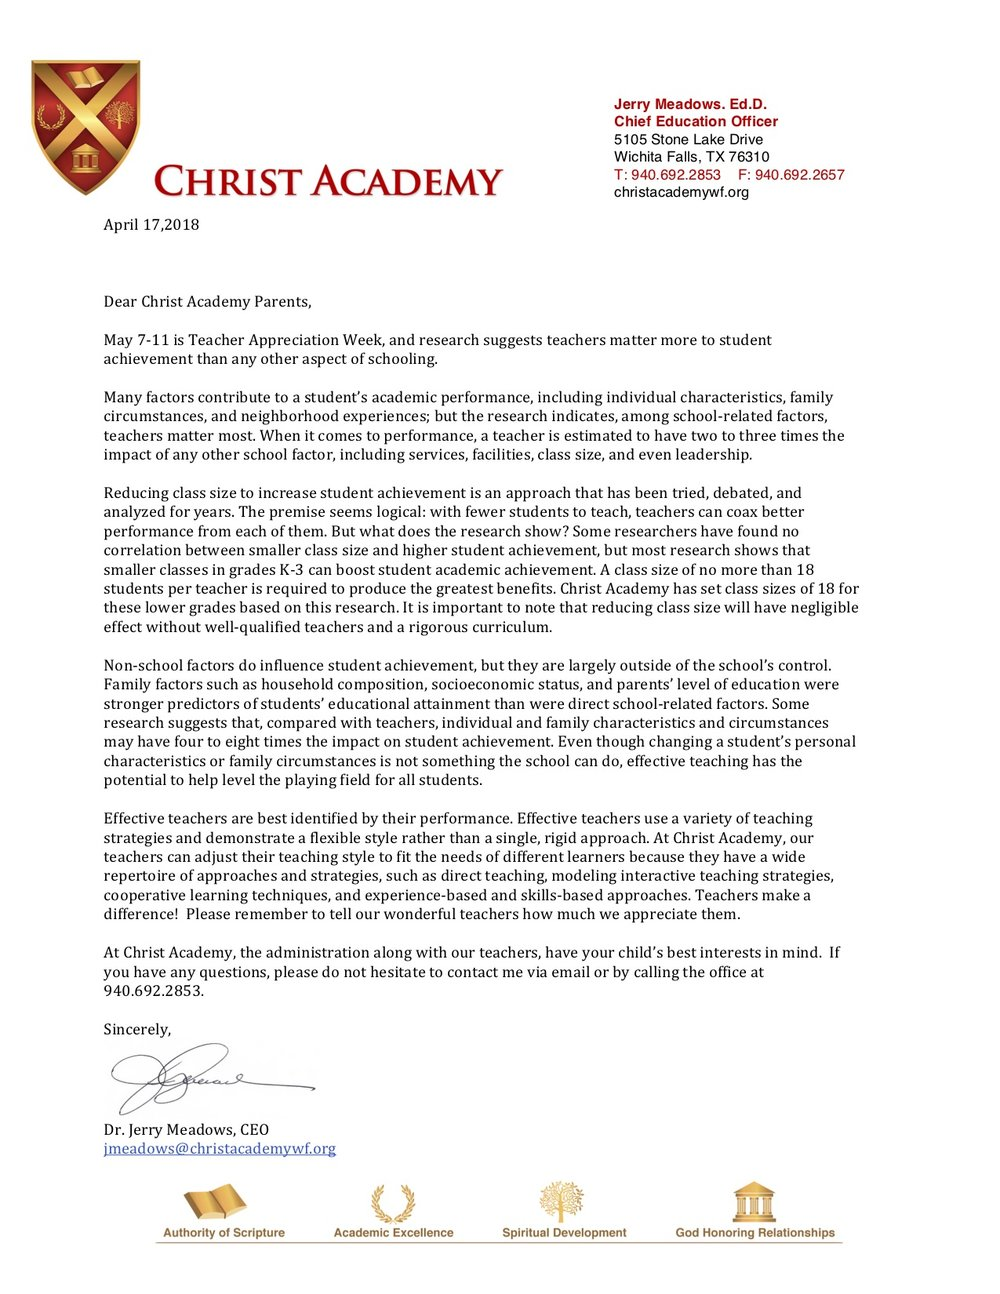 Dr. M Letter to Parents 4-2018 copy.jpg